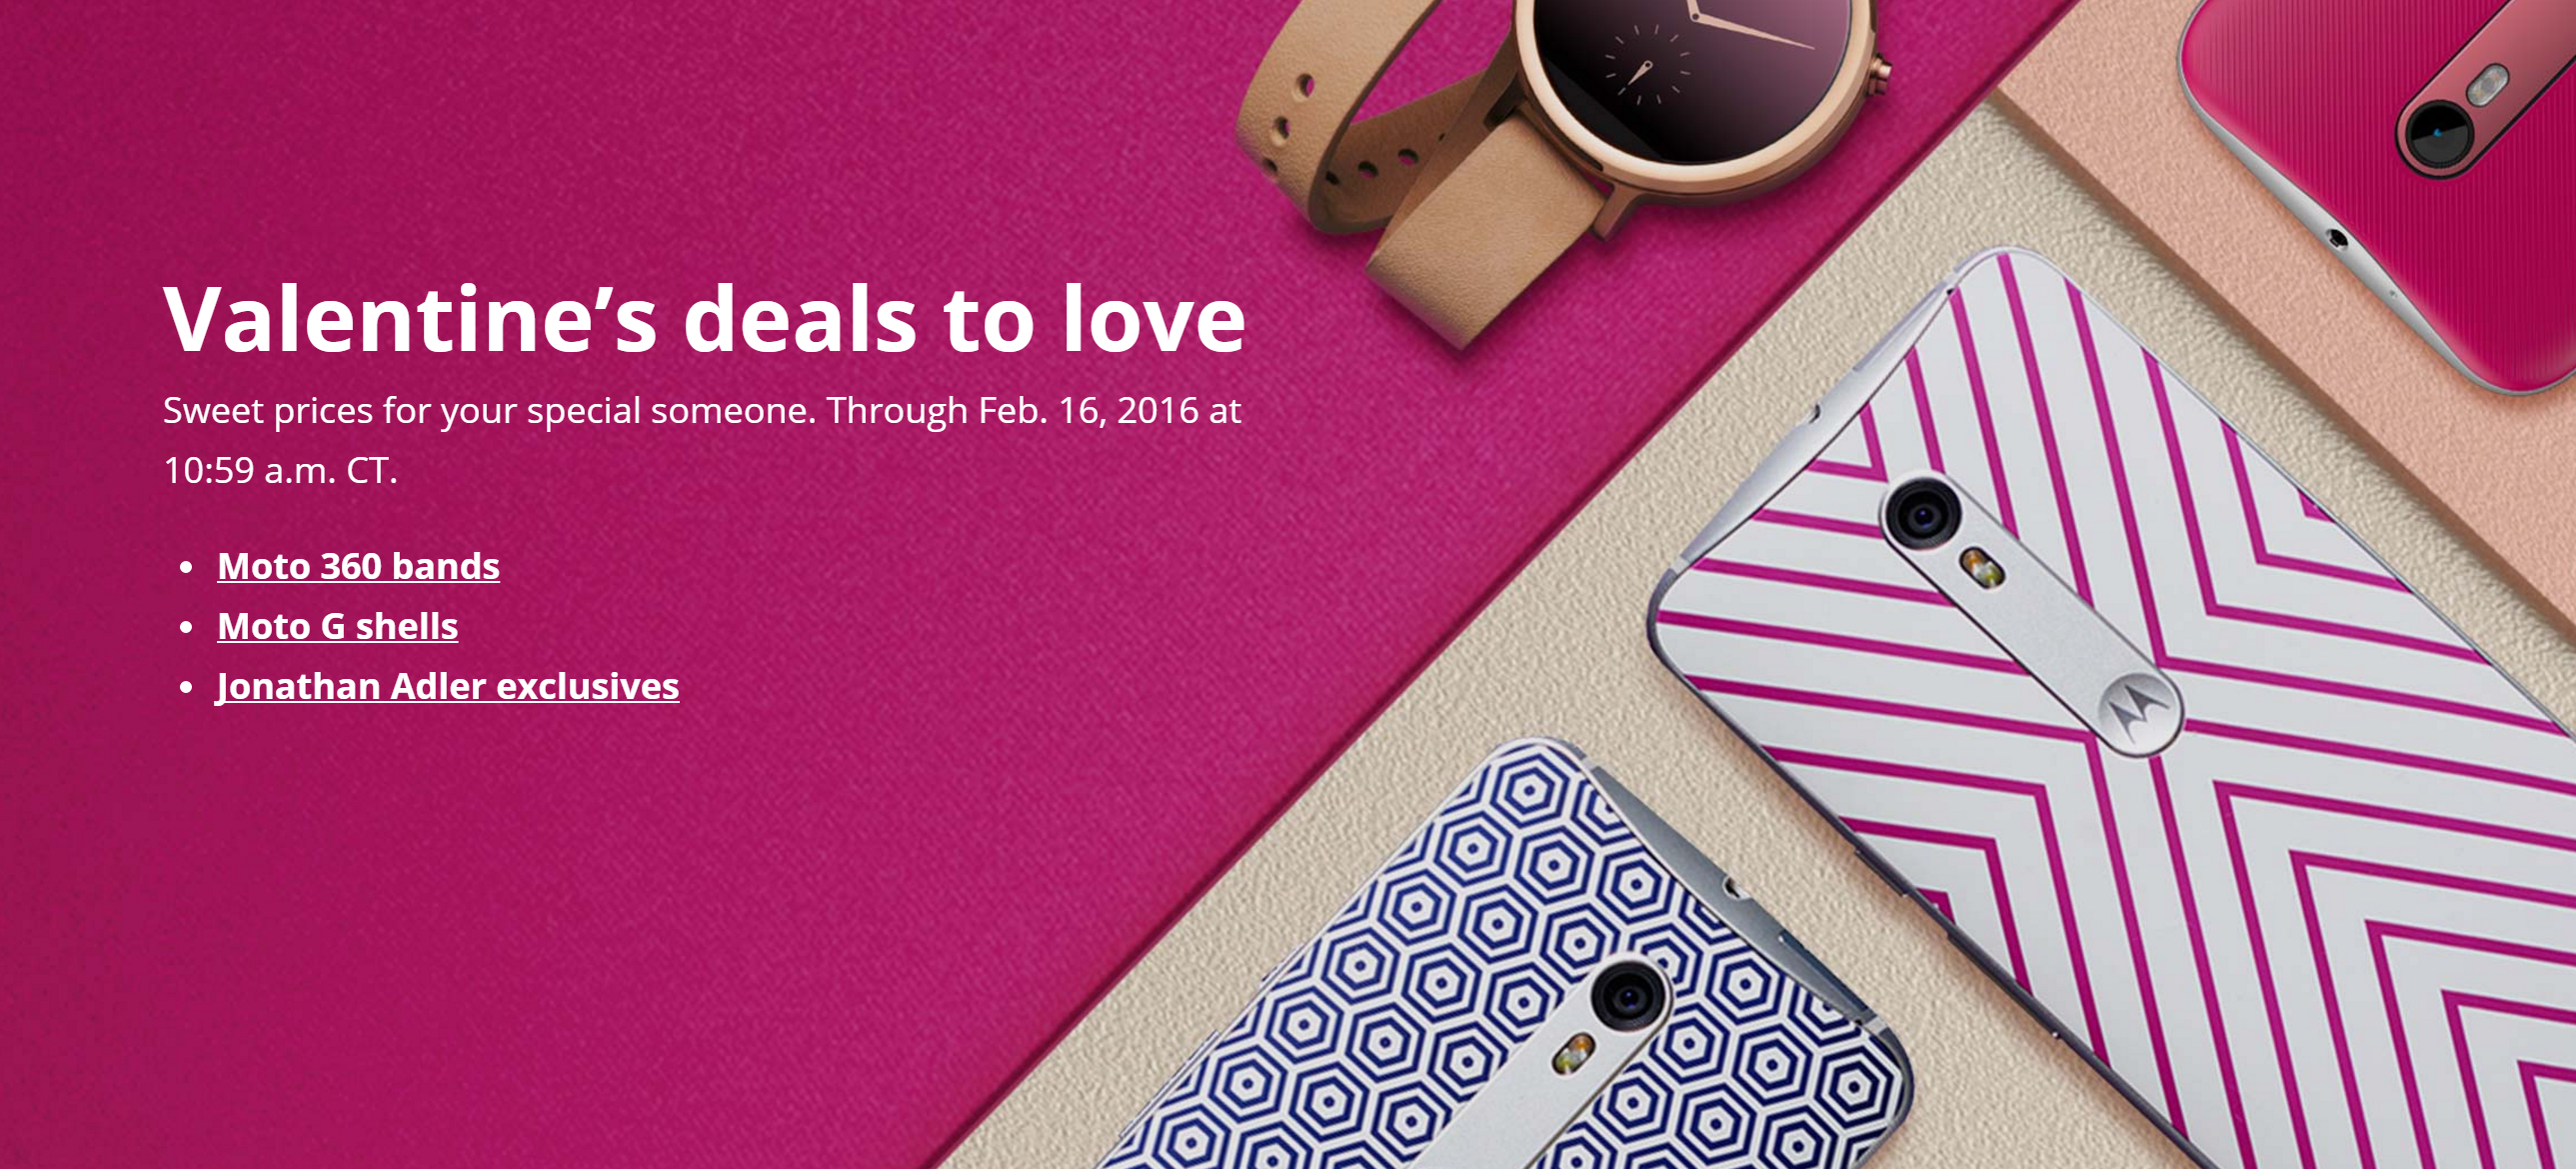 motorola tries to capture your heart with deals through, Ideas